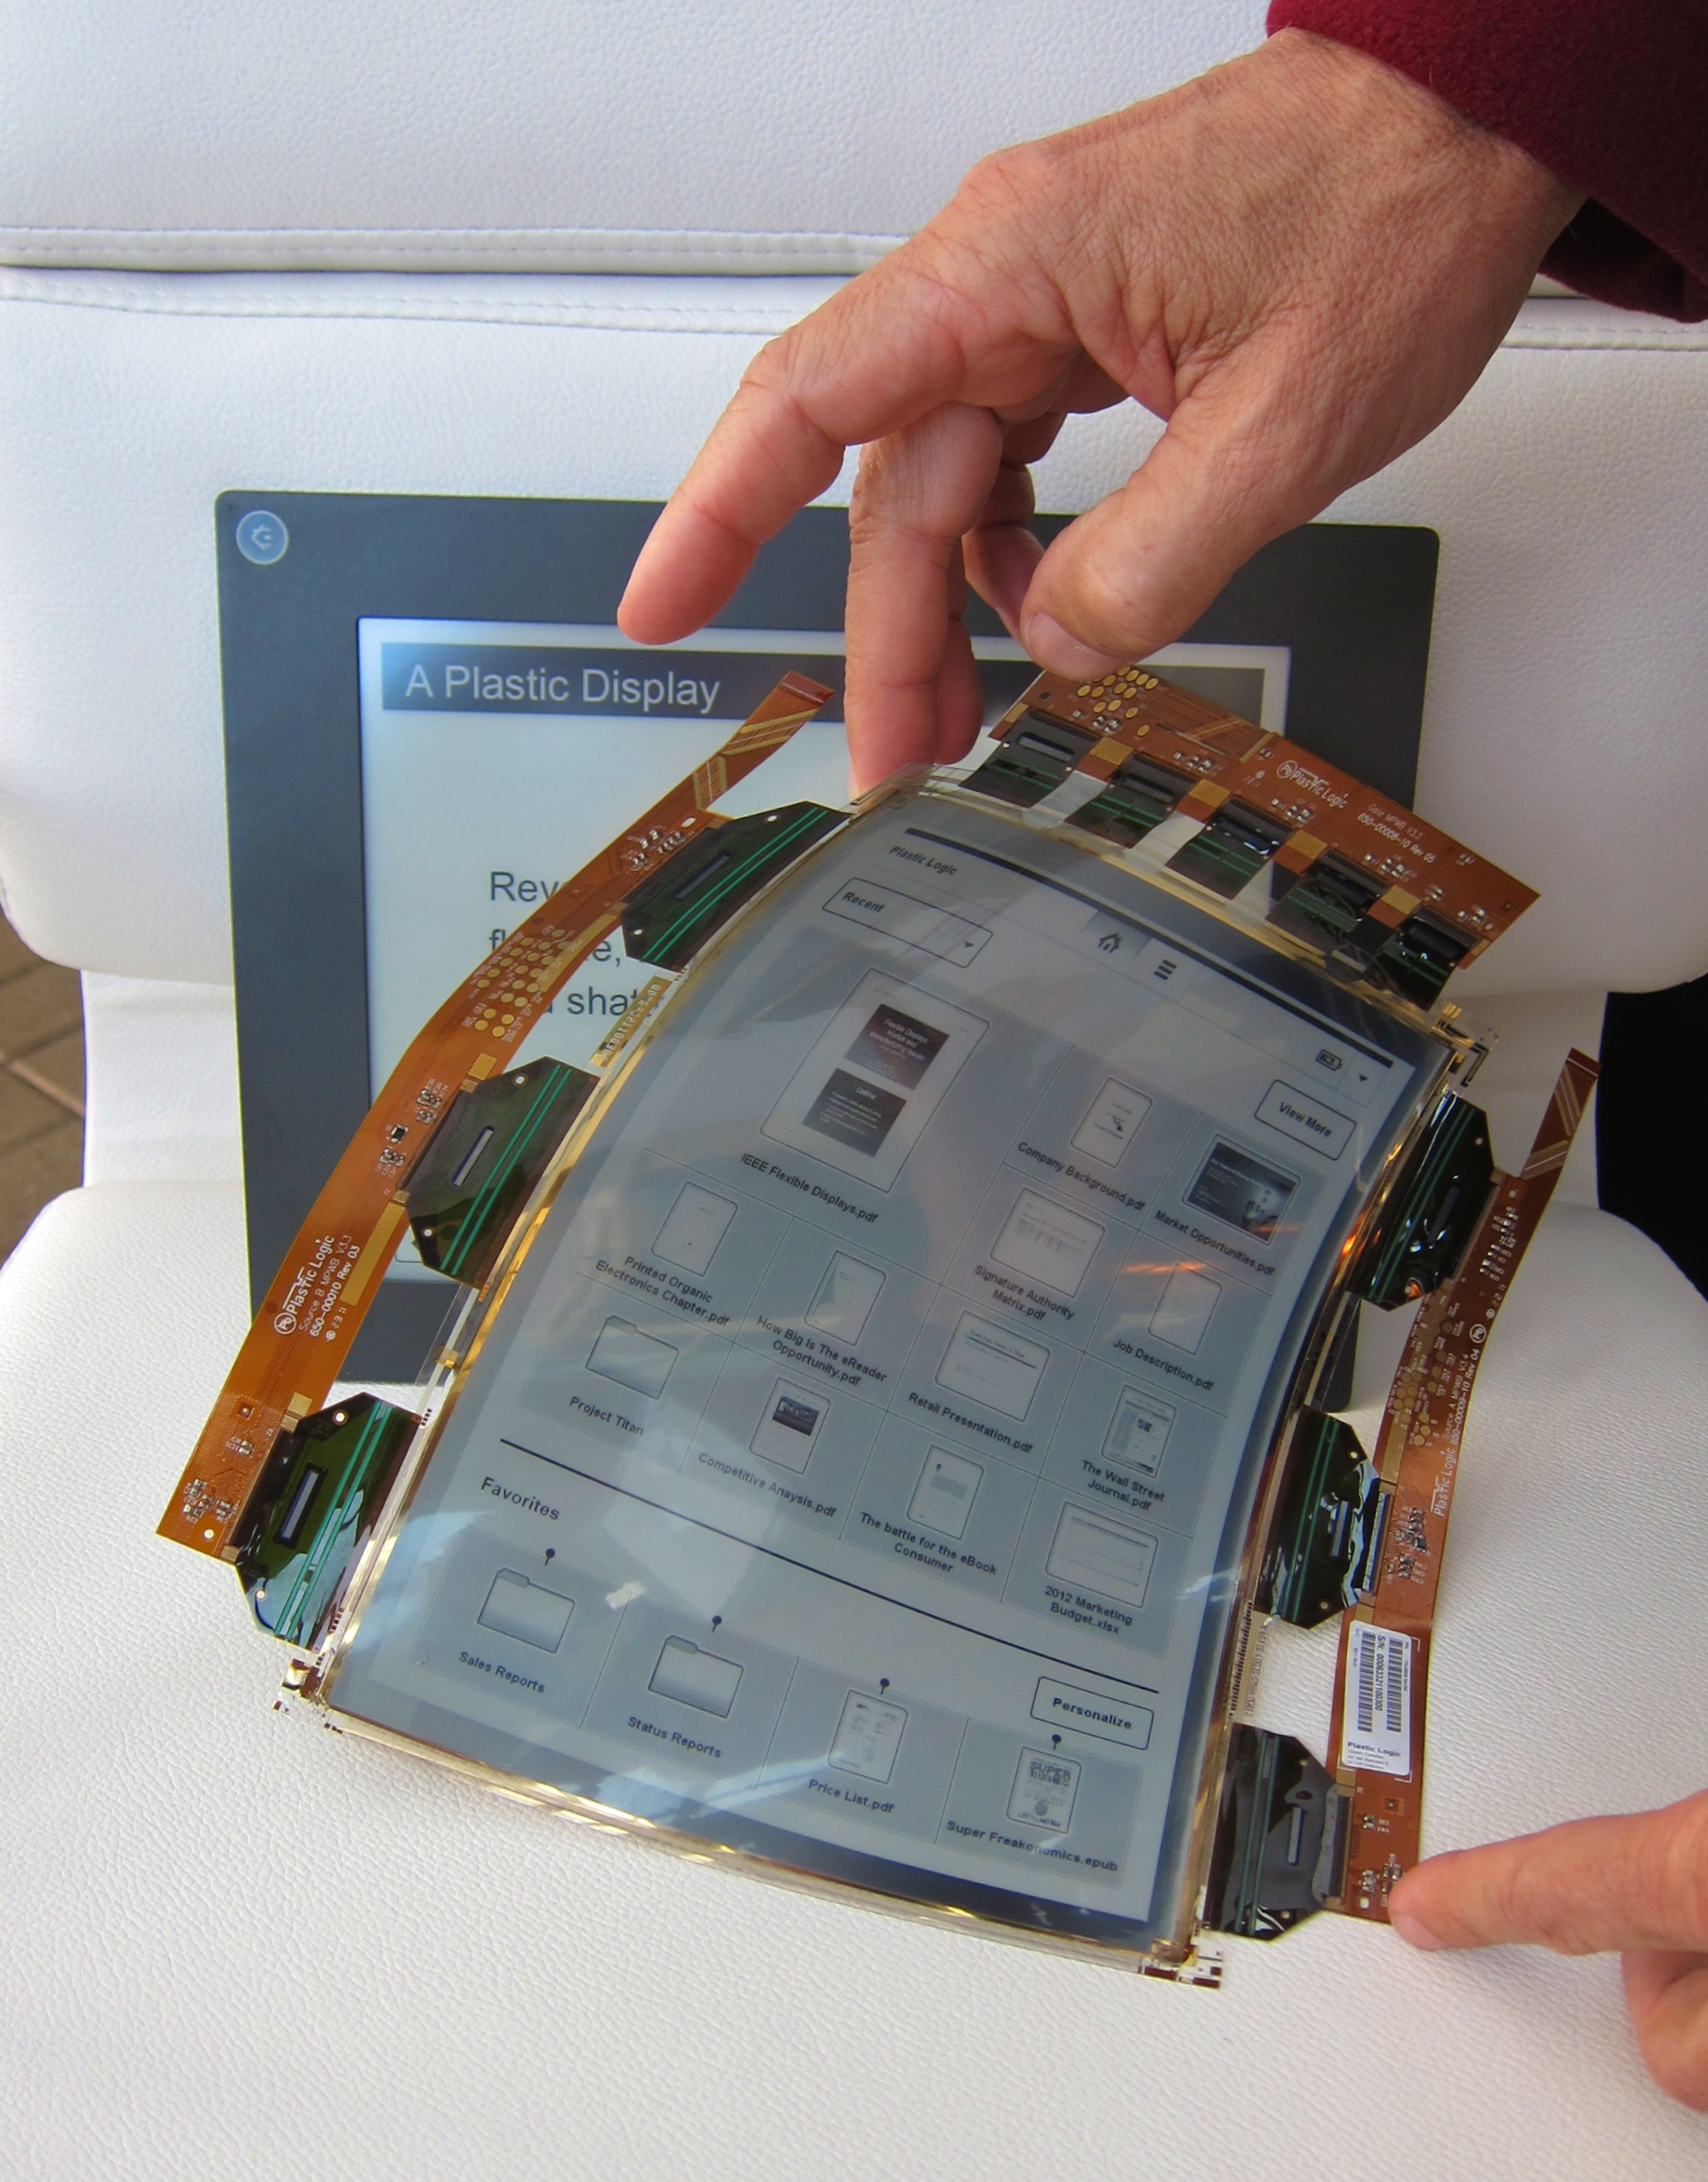 An example of a flexible display made by Plastic Logic